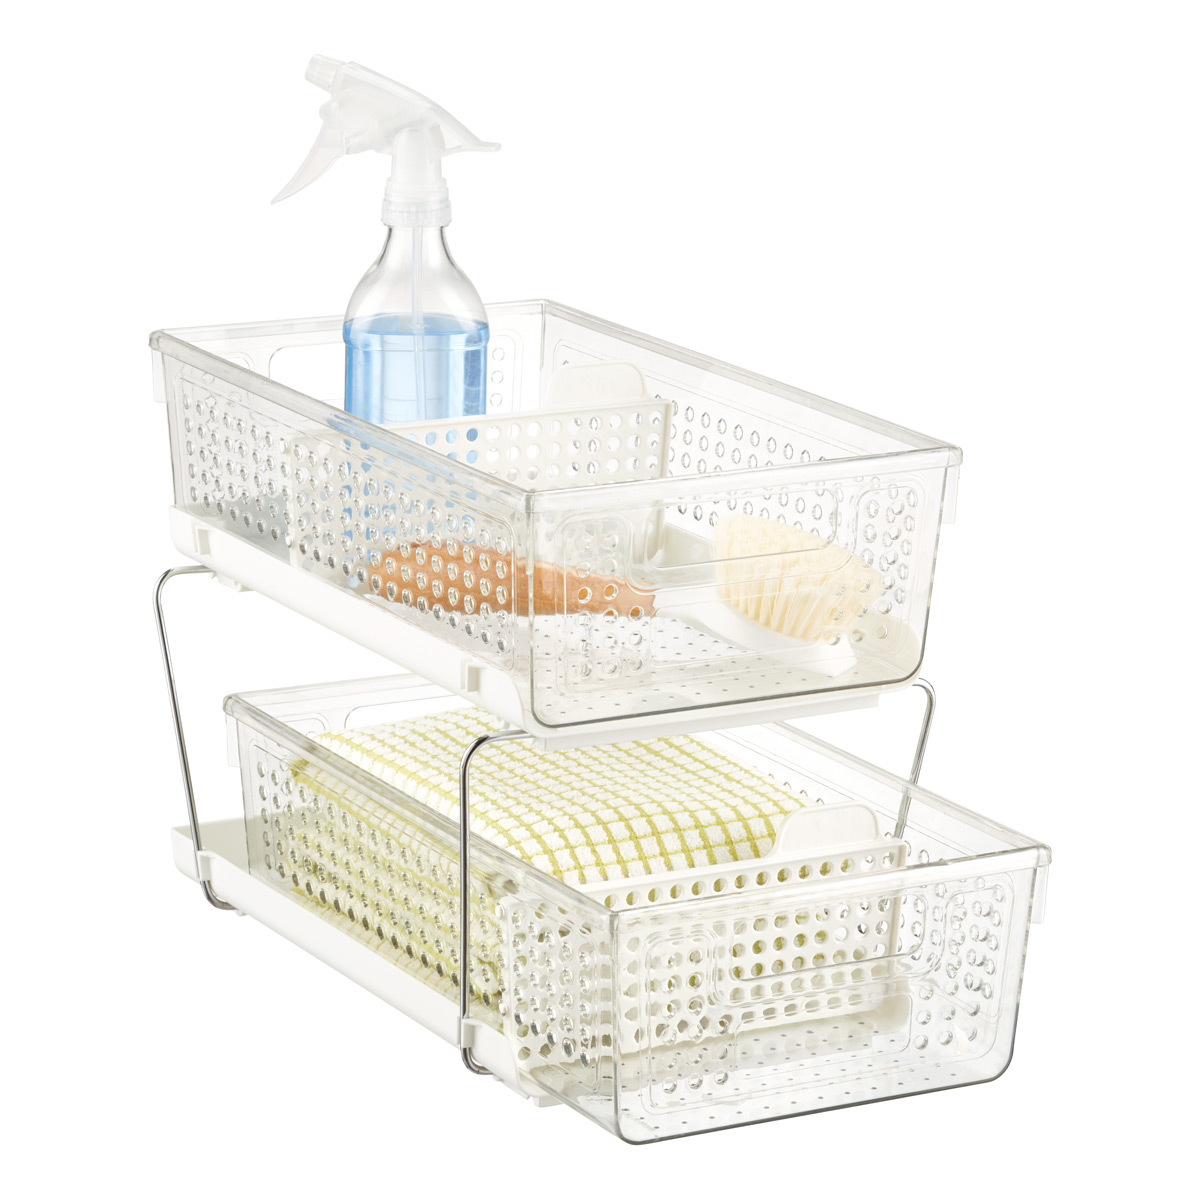 Madesmart 2 Tier White Pull Out Cabinet Organizer